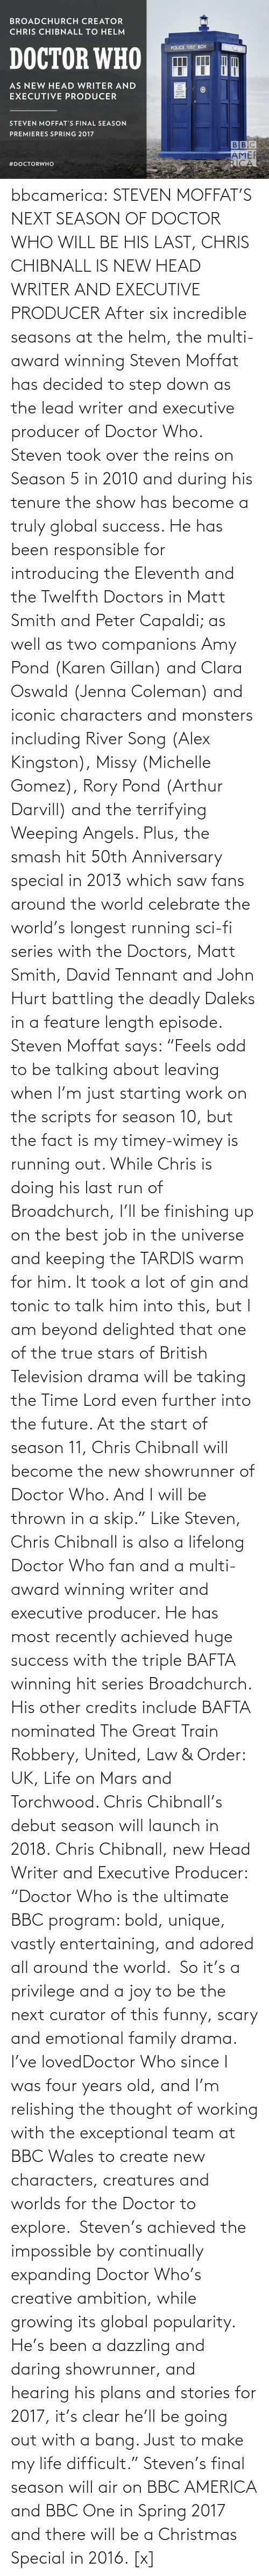 """oswald: BROADCHURCH CREATOR  CHRIS CHIBNALL TO HELM  POICE BOK  POLICE PYALLE BOX  DOCTOR WHO  AS NEW HEAD WRITER AND  PARE IAPIR  PUBLIC  EXECUTIVE PRODUCER  PULL TO OPEN  STEVEN MOFFAT'S FINAL SEASON  PREMIERES SPRING 2017  BBC  AMER  RICA  bbcamerica:  STEVEN MOFFAT'S NEXT SEASON OF DOCTOR WHO WILL BE HIS LAST,CHRIS CHIBNALL IS NEW HEAD WRITER AND EXECUTIVE PRODUCER    After six incredible seasons at the helm, the multi-award winning Steven Moffat has decided to step down as the lead writer and executive producer of Doctor Who. Steven took over the reins on Season 5 in 2010 and during his tenure the show has become a truly global success. He has been responsible for introducing the Eleventh and the Twelfth Doctors in Matt Smith and Peter Capaldi; as well as two companions Amy Pond (Karen Gillan) and Clara Oswald (Jenna Coleman) and iconic characters and monsters including River Song (Alex Kingston), Missy (Michelle Gomez), Rory Pond (Arthur Darvill) and the terrifying Weeping Angels. Plus, the smash hit 50th Anniversary special in 2013 which saw fans around the world celebrate the world's longest running sci-fi series with the Doctors, Matt Smith, David Tennant and John Hurt battling the deadly Daleks in a feature length episode. Steven Moffat says: """"Feels odd to be talking about leaving when I'm just starting work on the scripts for season 10, but the fact is my timey-wimey is running out. While Chris is doing his last run of Broadchurch, I'll be finishing up on the best job in the universe and keeping the TARDIS warm for him. It took a lot of gin and tonic to talk him into this, but I am beyond delighted that one of the true stars of British Television drama will be taking the Time Lord even further into the future. At the start of season 11, Chris Chibnall will become the new showrunner of Doctor Who. And I will be thrown in a skip."""" Like Steven, Chris Chibnall is also a lifelong Doctor Who fan and a multi-award winning writer and executive producer. He has mo"""